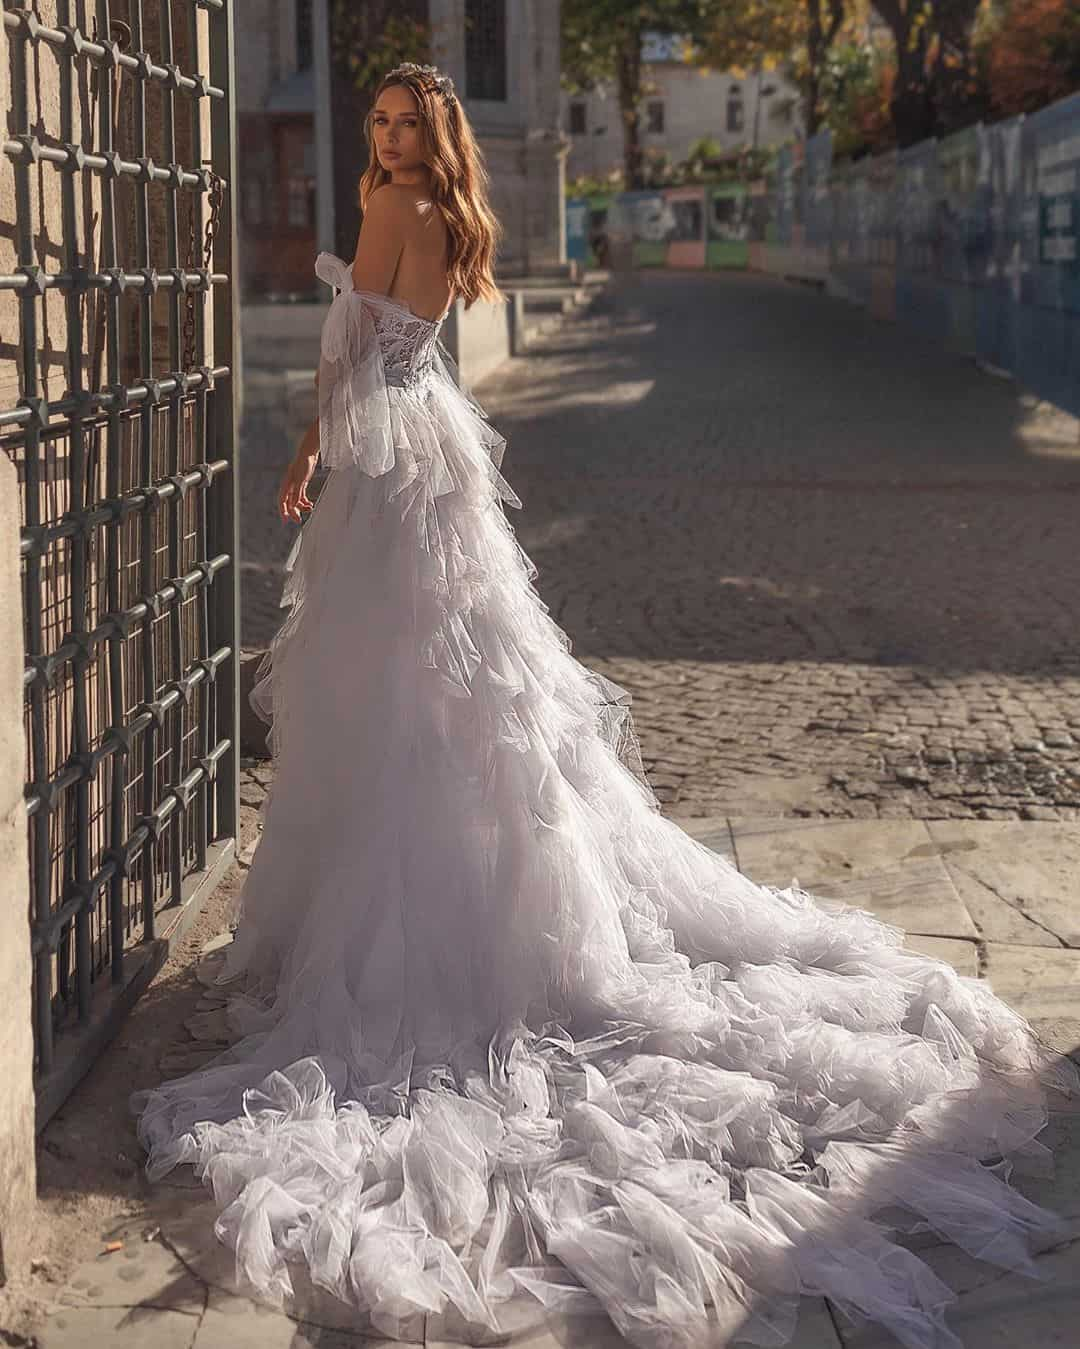 Extraordinarily Beautiful Wedding Dresses by Dalia & Michael Mansharov